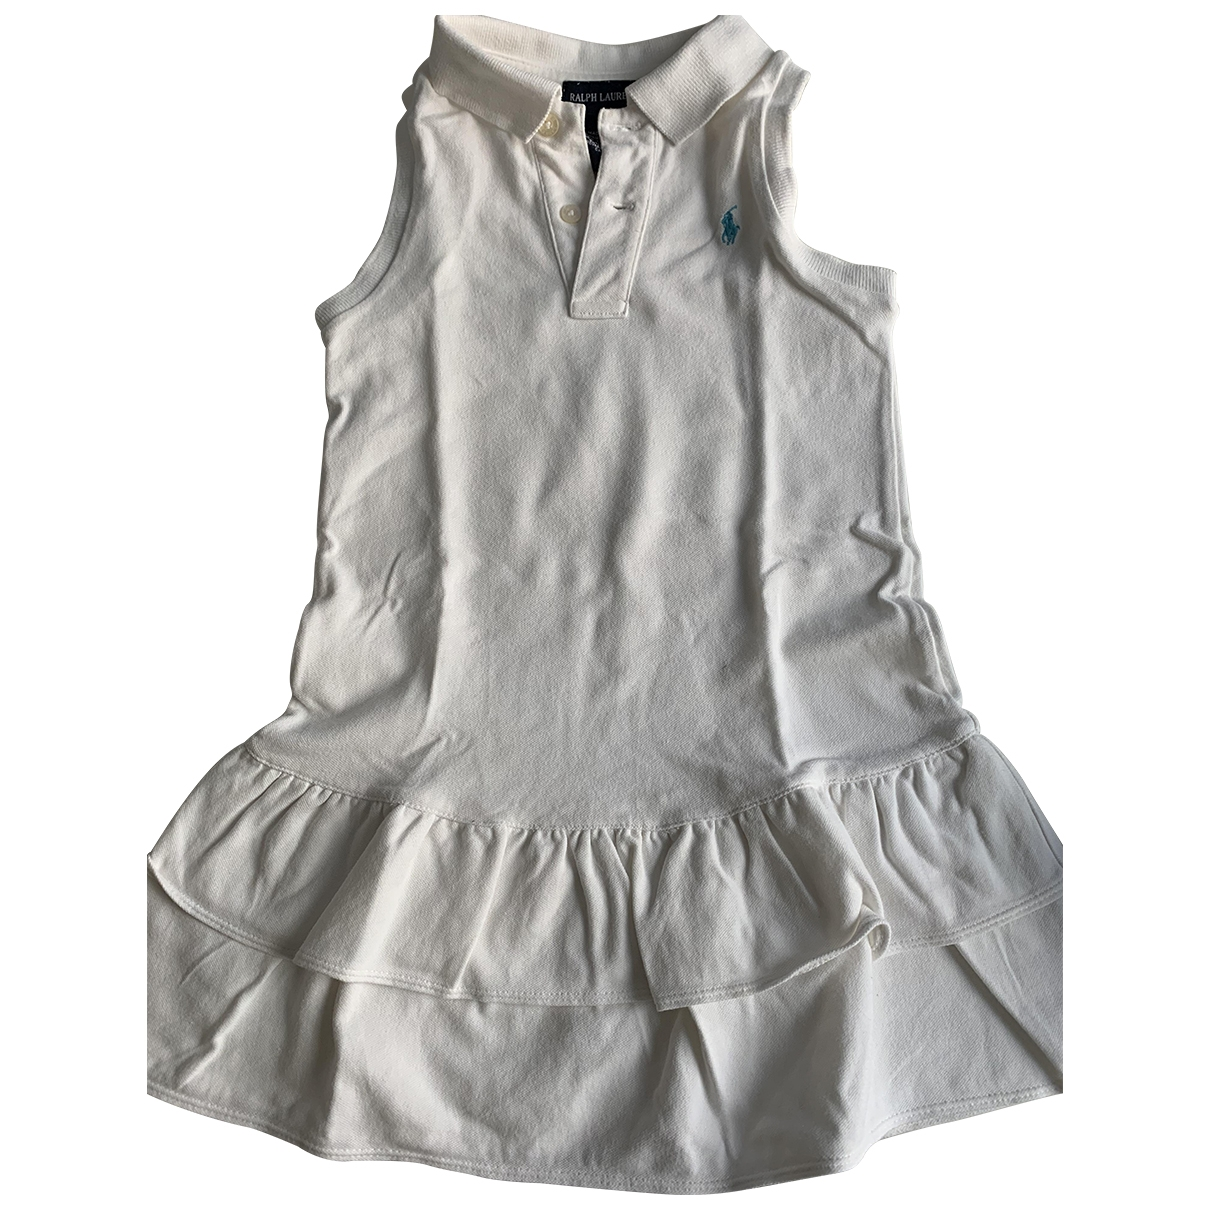 Polo Ralph Lauren \N White Cotton dress for Kids 4 years - up to 102cm FR